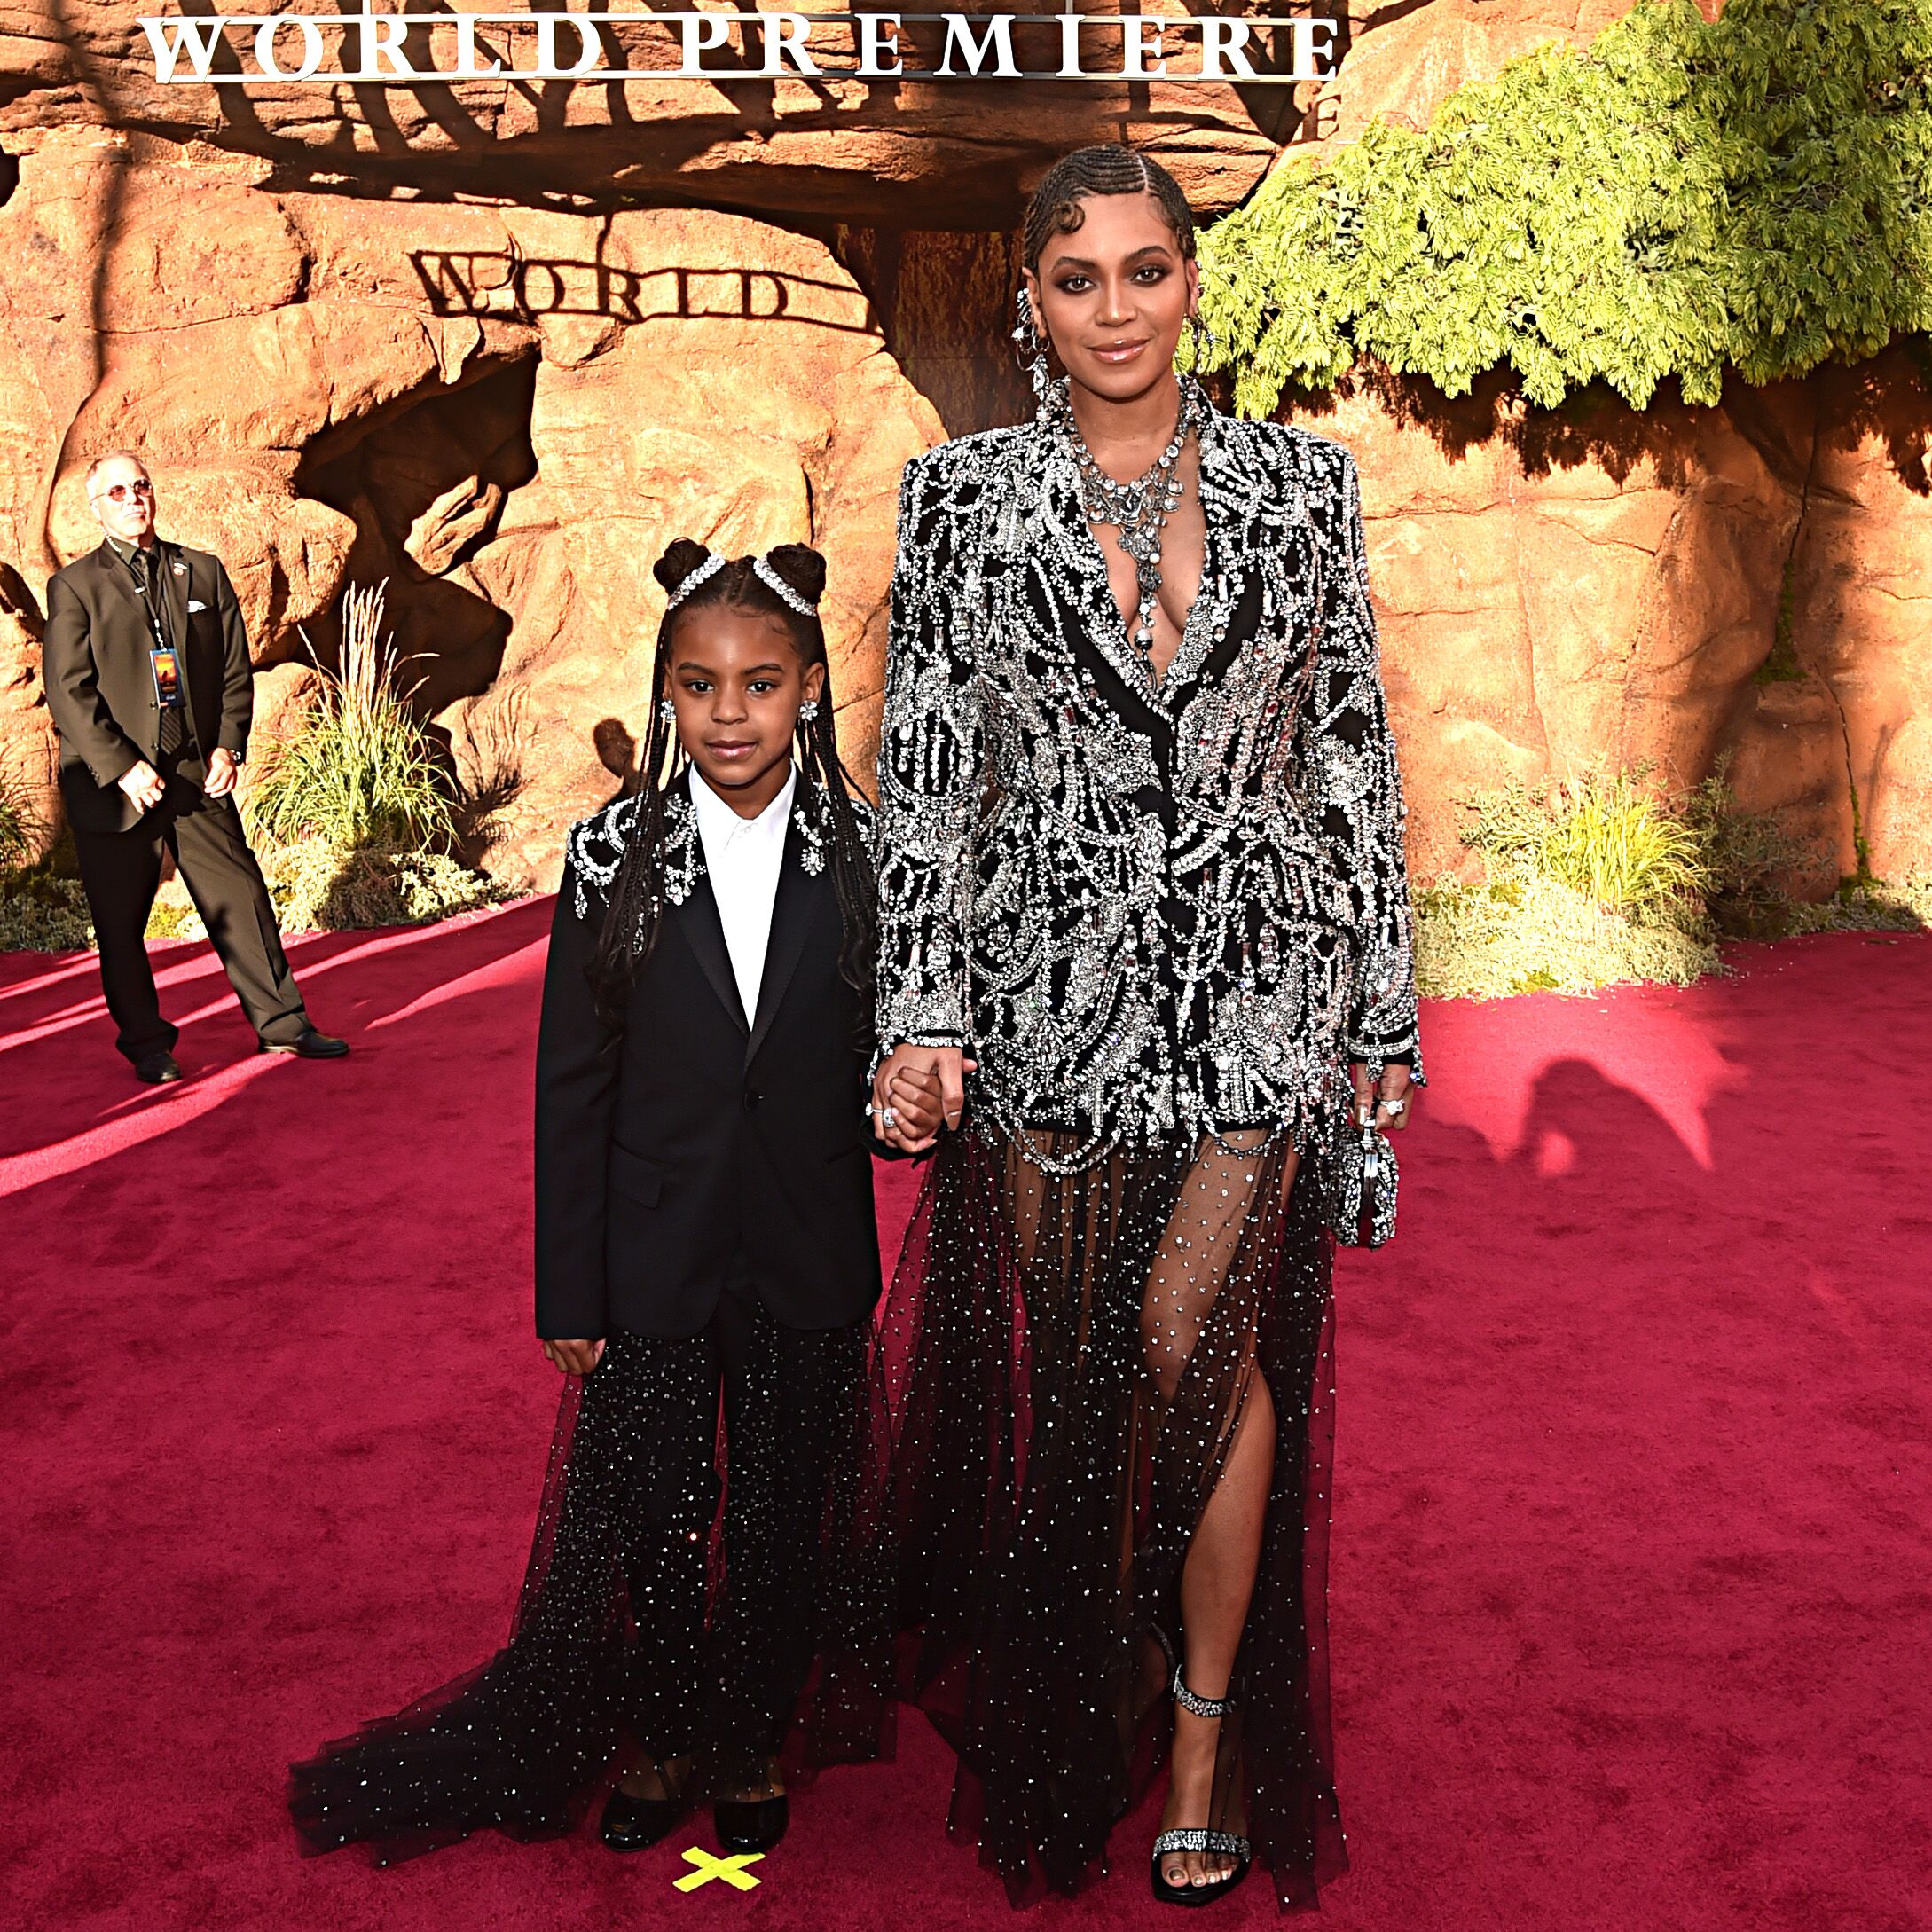 """Beyoncé and Blue Ivy at the world premiere of """"The Lion King"""" in 2019 